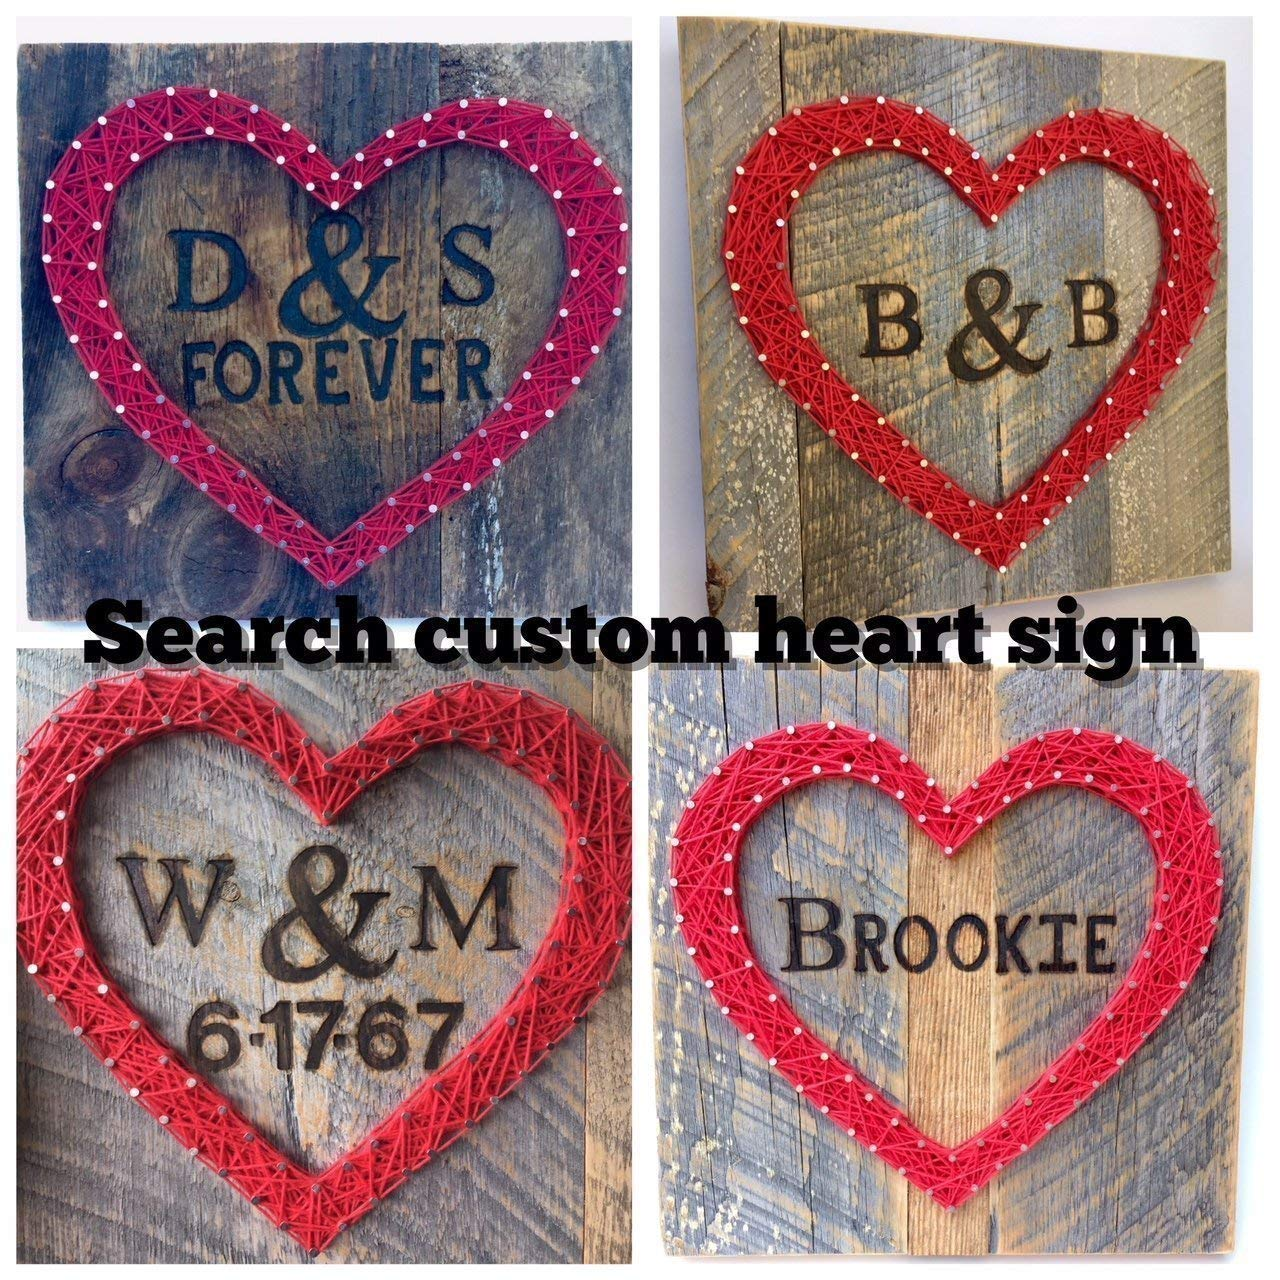 Sweet & small freestanding wooden red string art heart block sign. Perfect for home accents, Wedding favors, Anniversaries, housewarming, teacher, congratulations & just because. by Nail it Art by Nail it Art (Image #7)